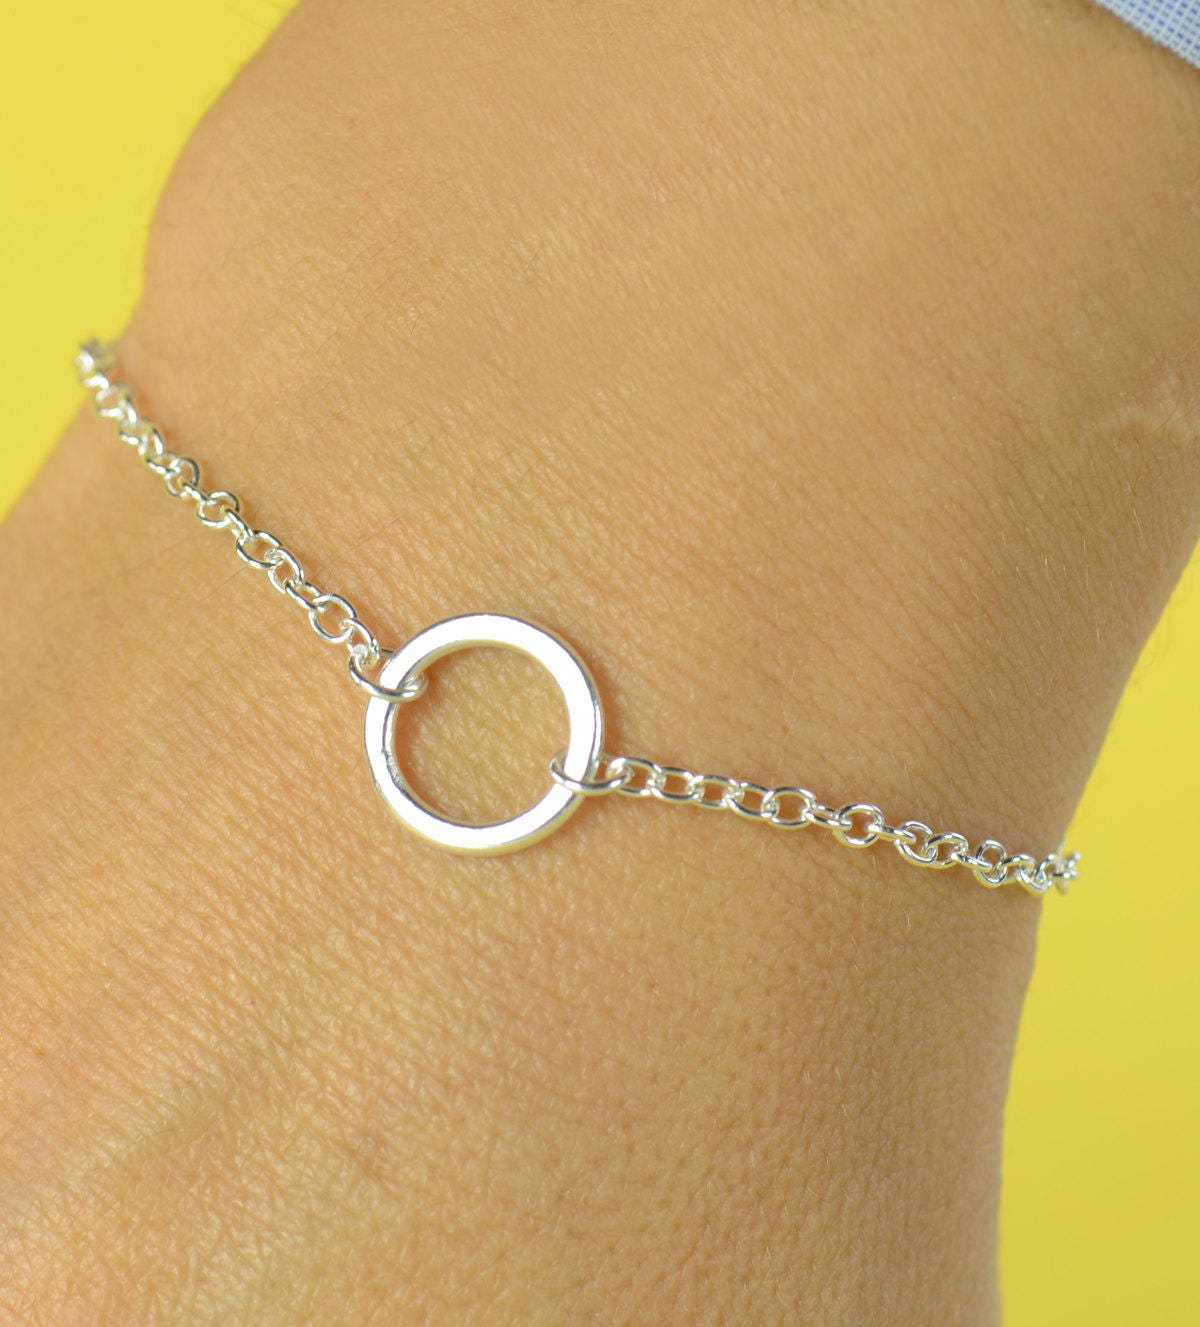 iwf circle bangle products itwasfrom bracelet delicate open rose